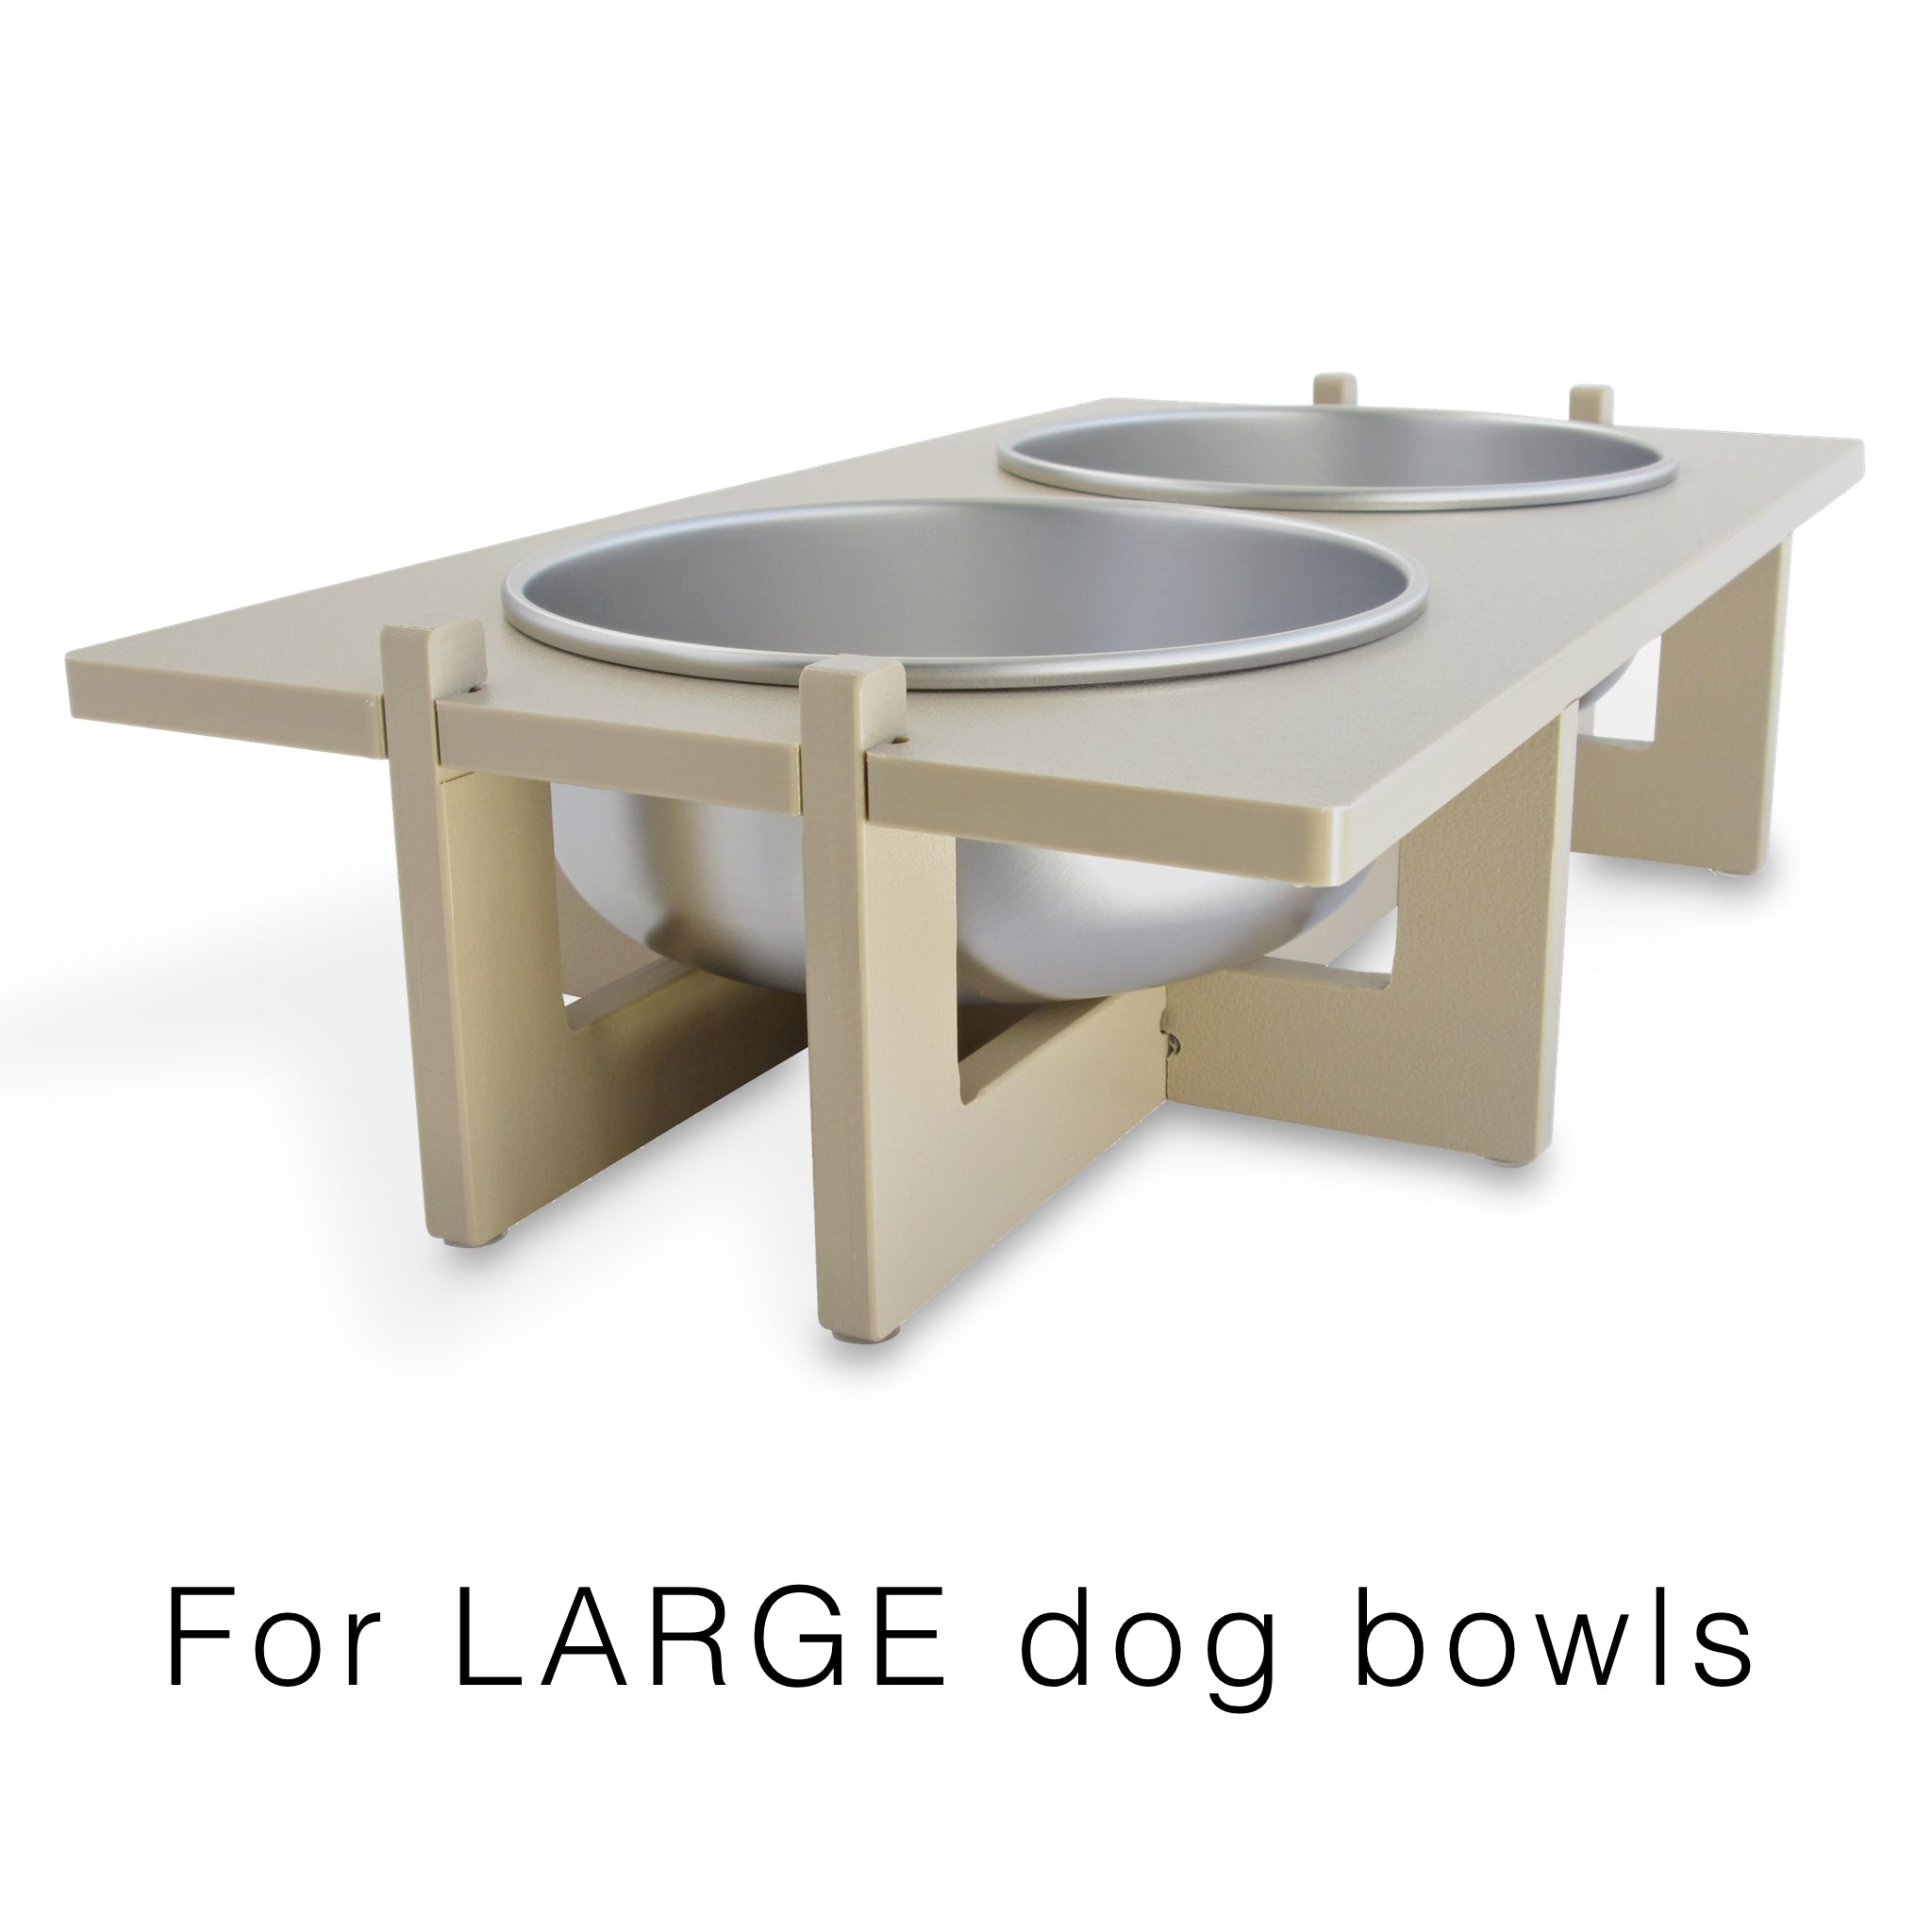 platinum pet wildlife black pets the b with three feeding supplies home bowl elevated triple diner dog depot feeder n feeders bowls cup outdoors midnight modern cat